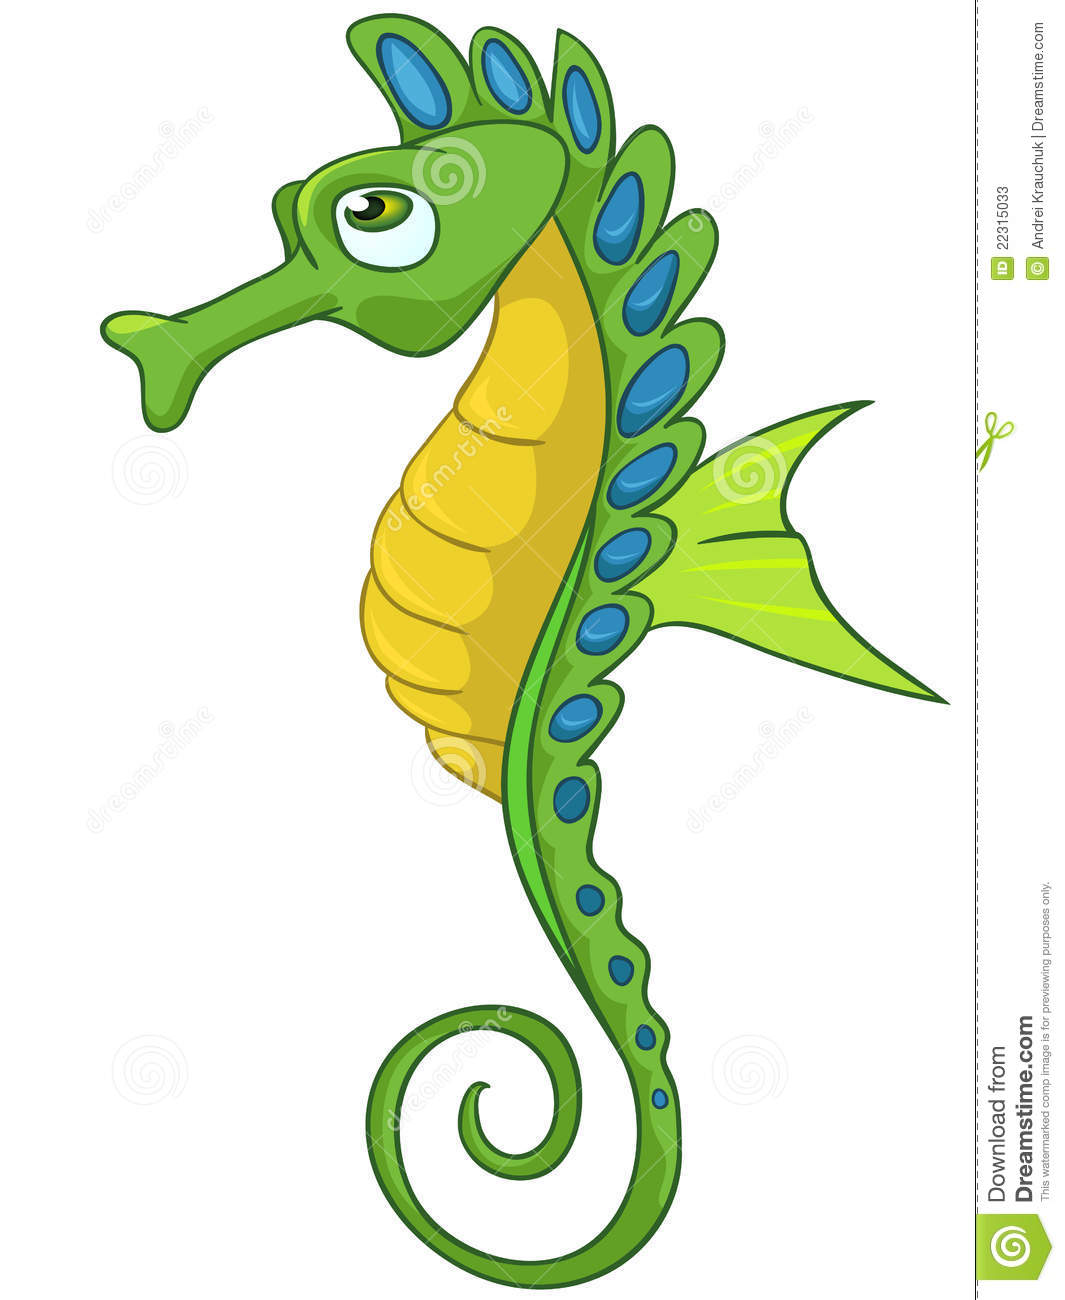 Seahorse clipart #11, Download drawings